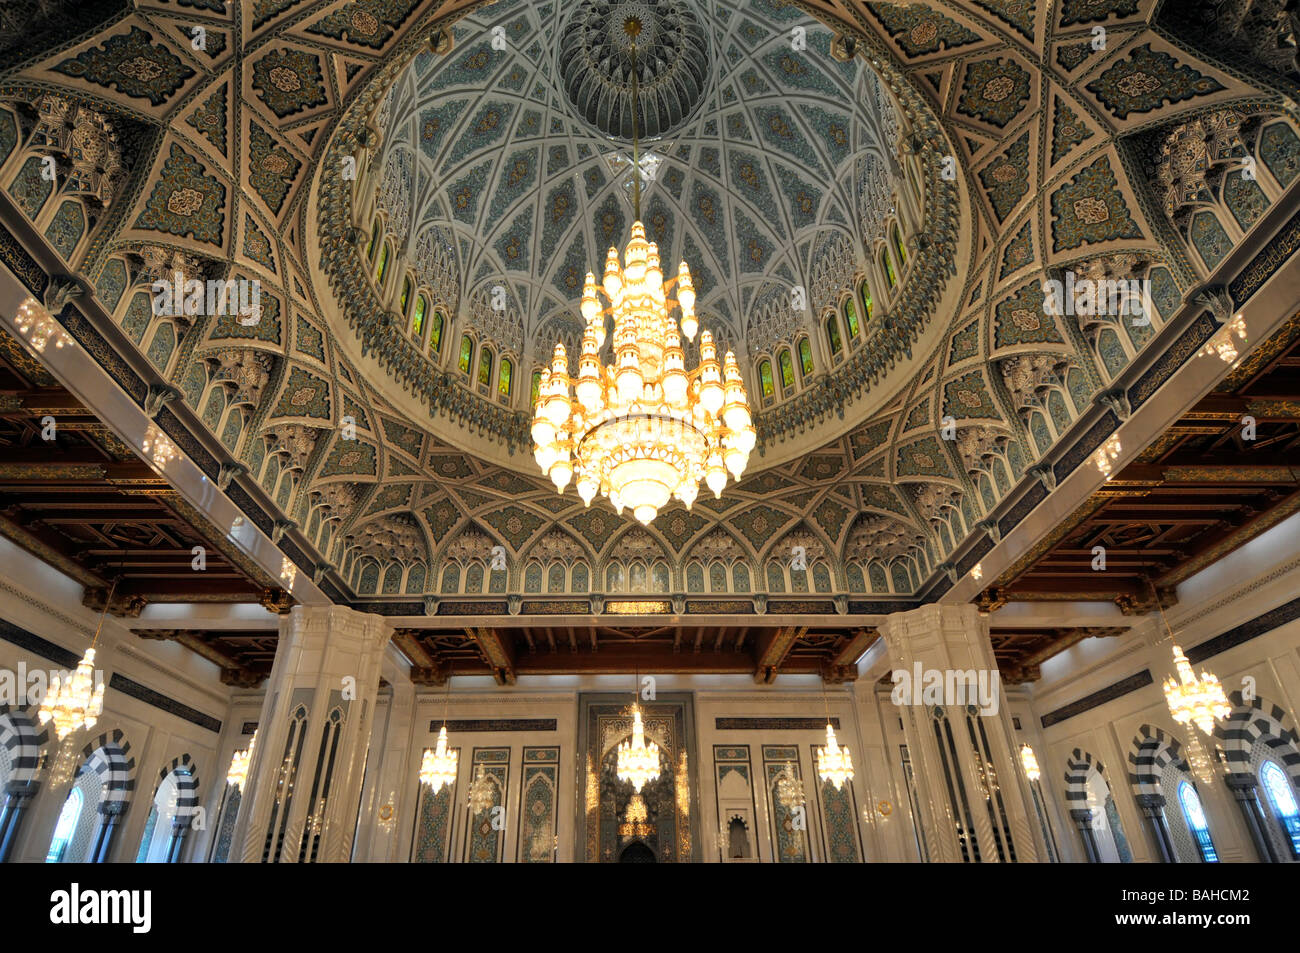 The Worlds Largest Chandelier In Sultan Qaboos Grand Mosque Mu Oman Stock Photo